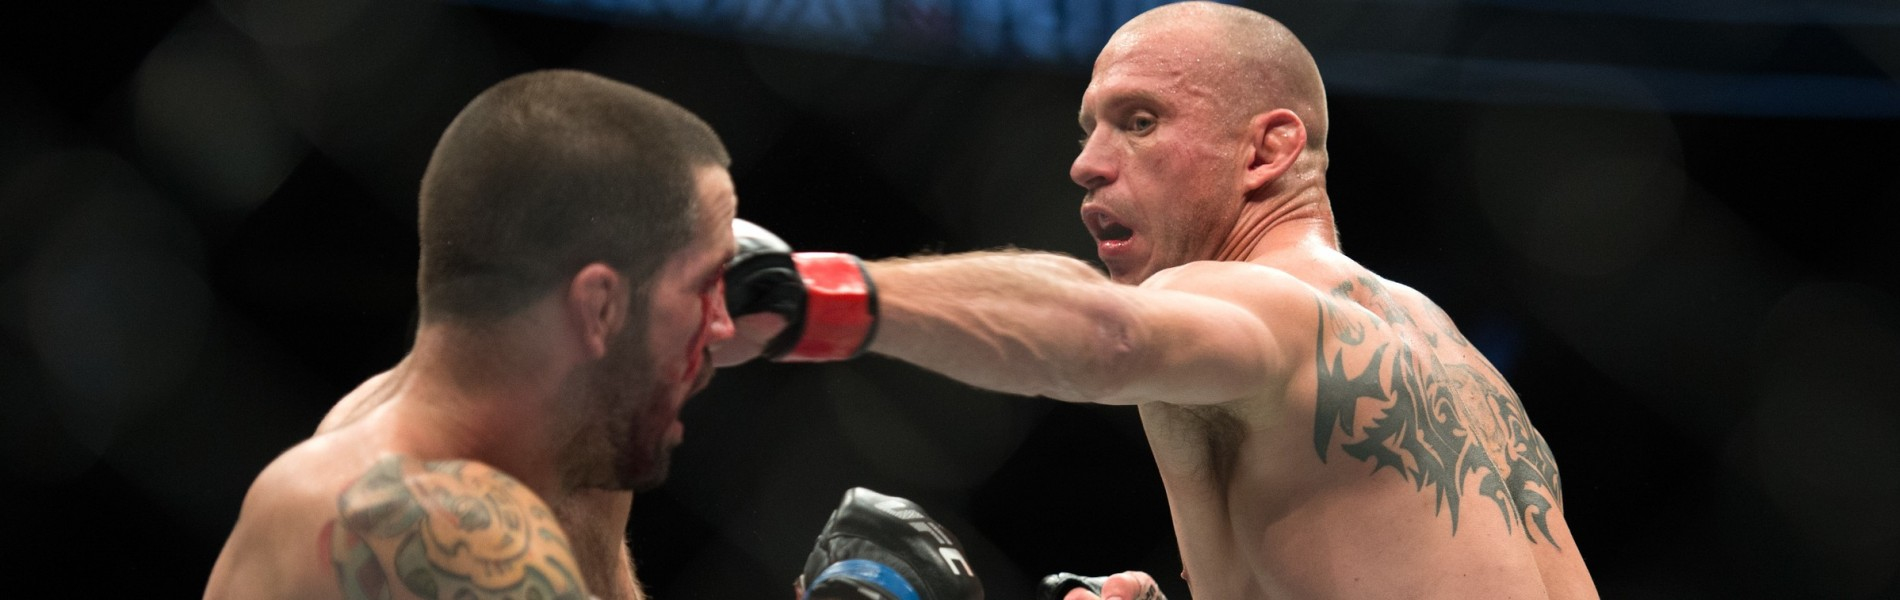 Donald Cerrone punches Matt Brown in their welterweight bout during the UFC 206 event inside the Air Canada Centre on December 10, 2016 in Toronto, Ontario, Canada.